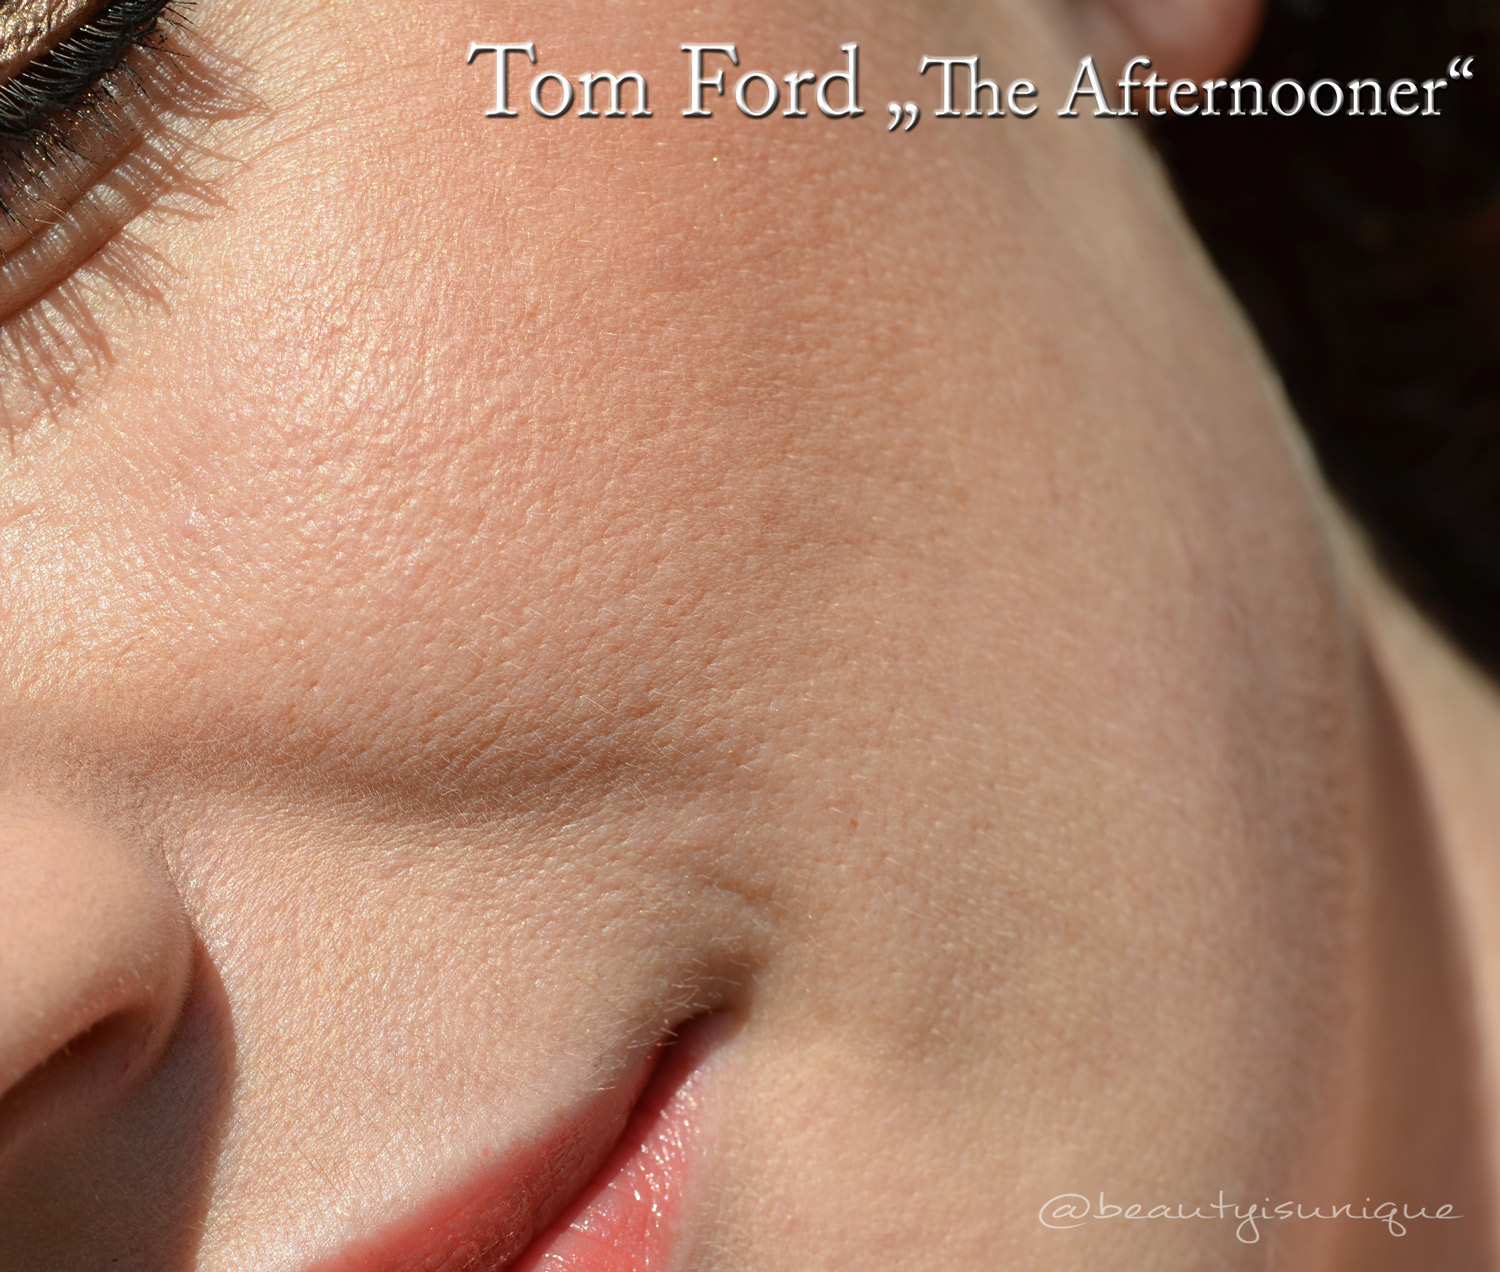 Tom-Ford-The-Afternooner-makeup